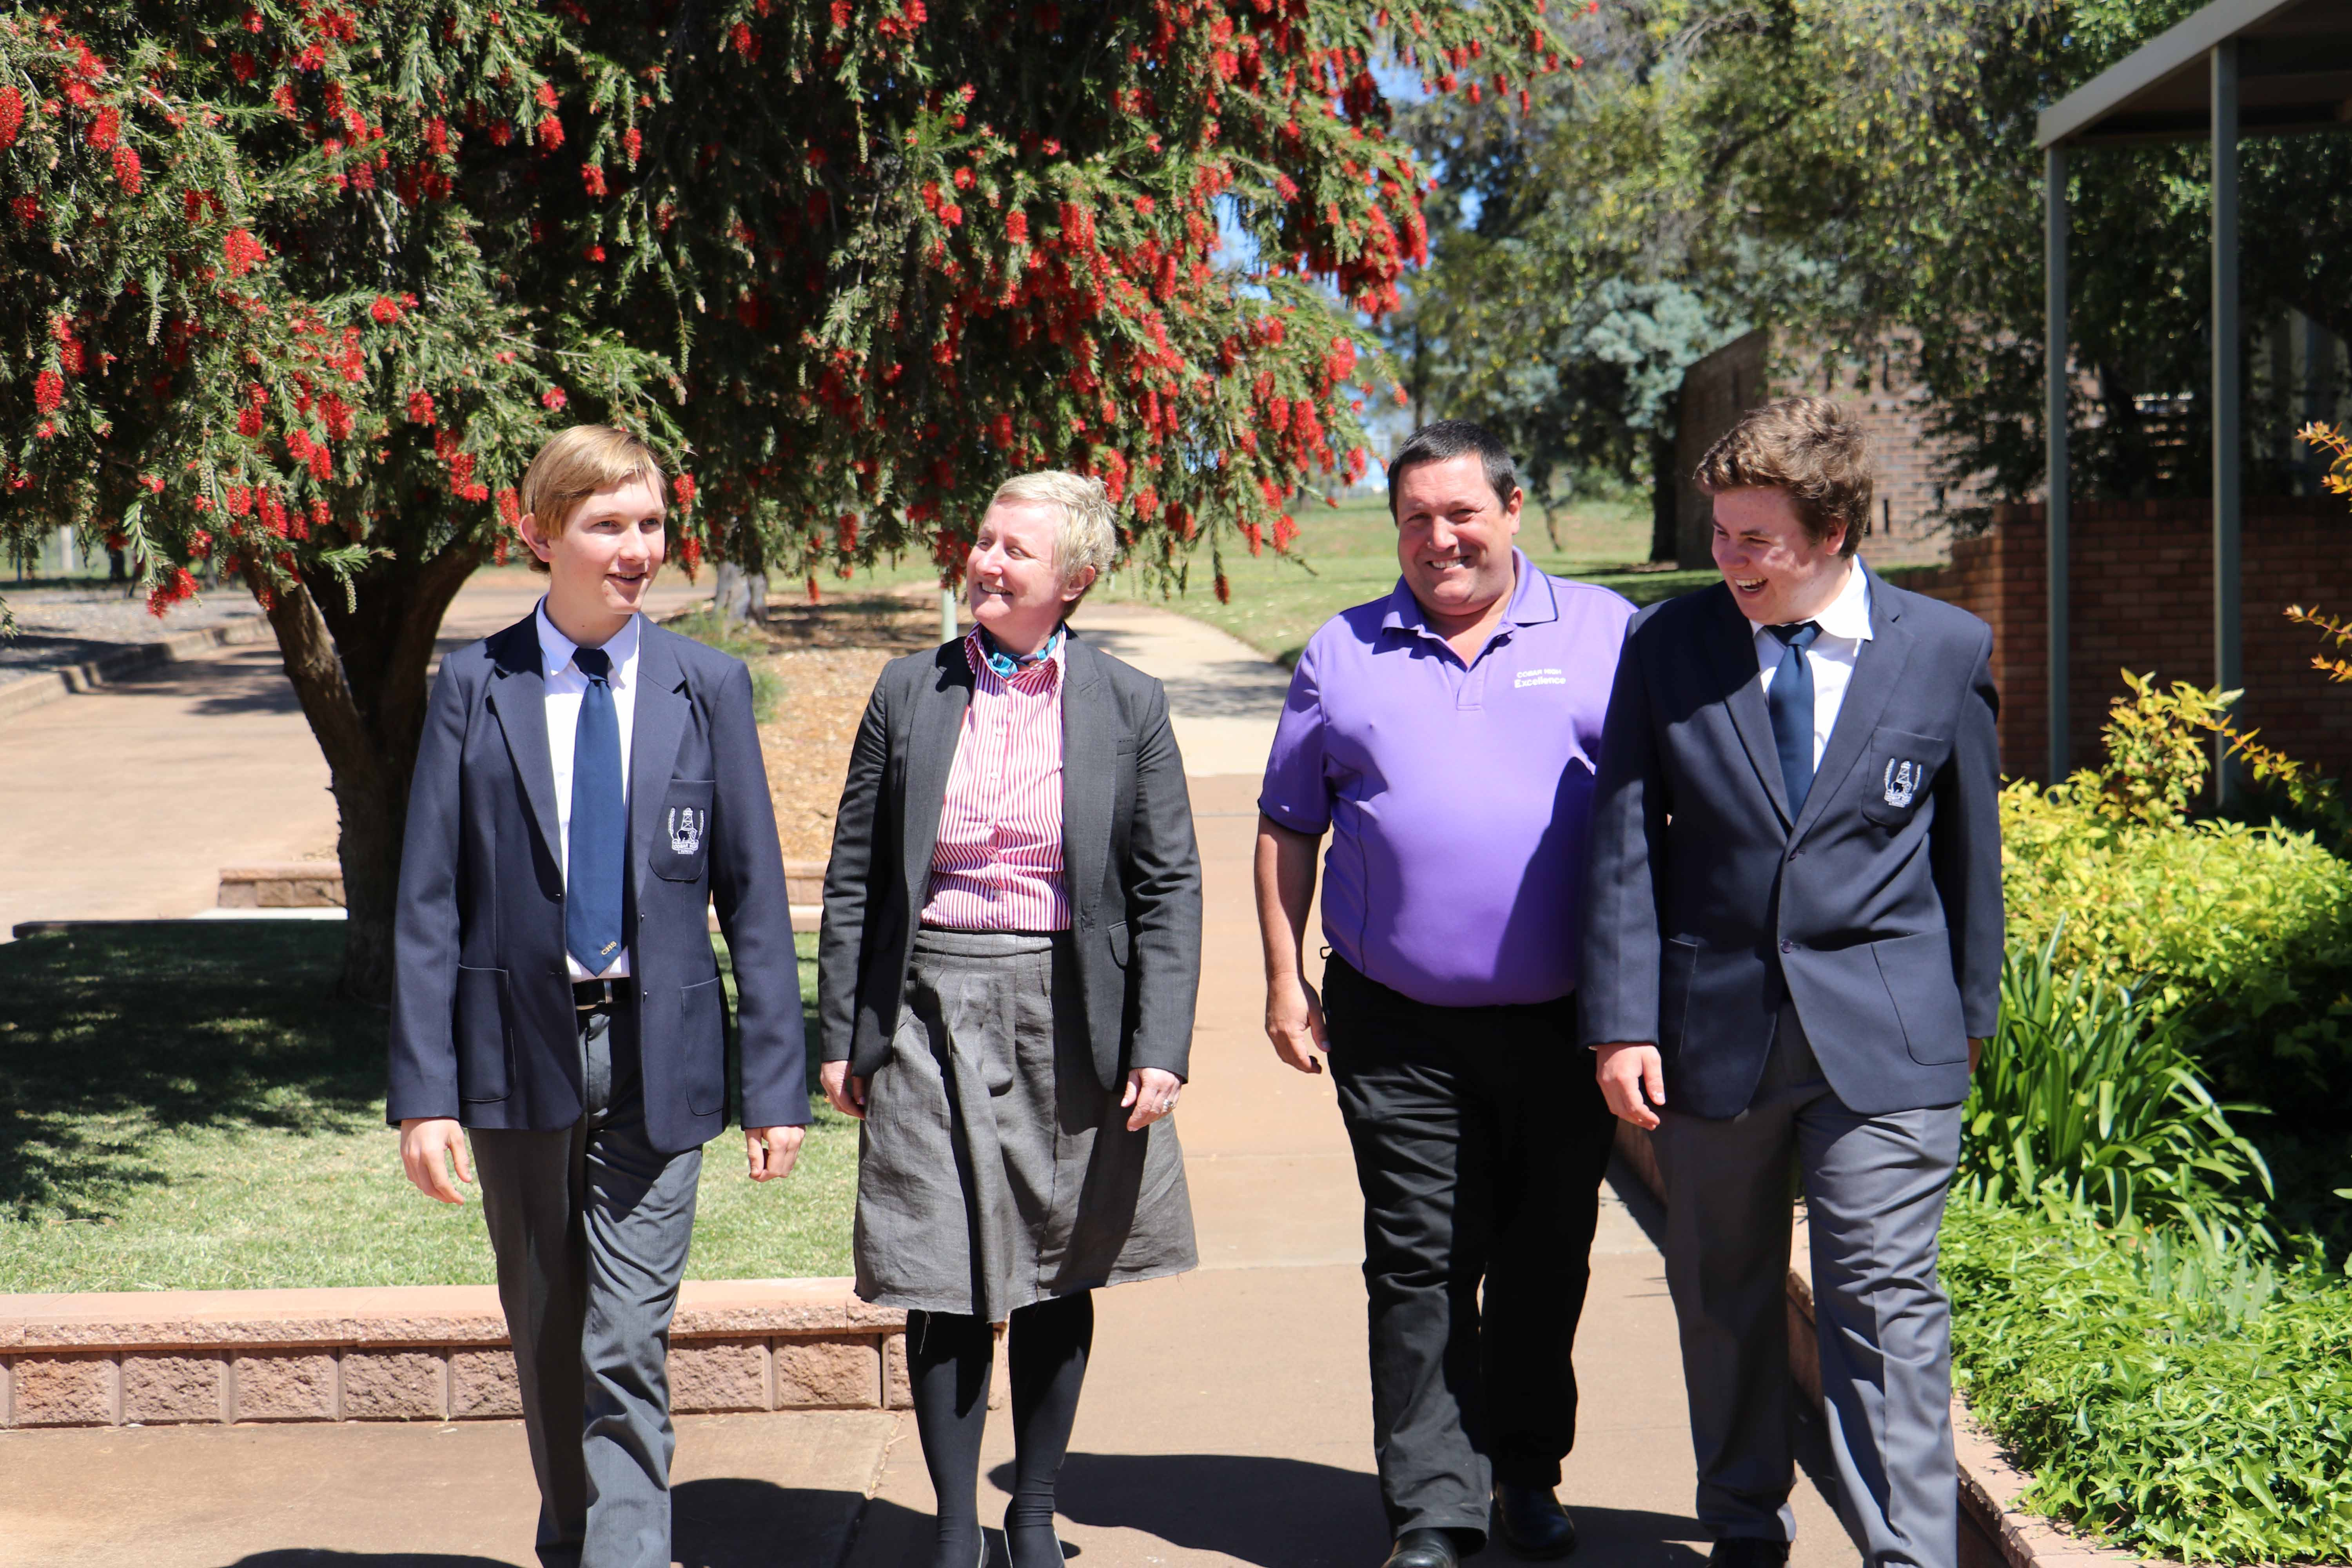 New principal at Cobar High School Safija Bristina has been made to feel very welcome by school captains Owen Potter and Jye Robinson and vice principal Shane Carter.